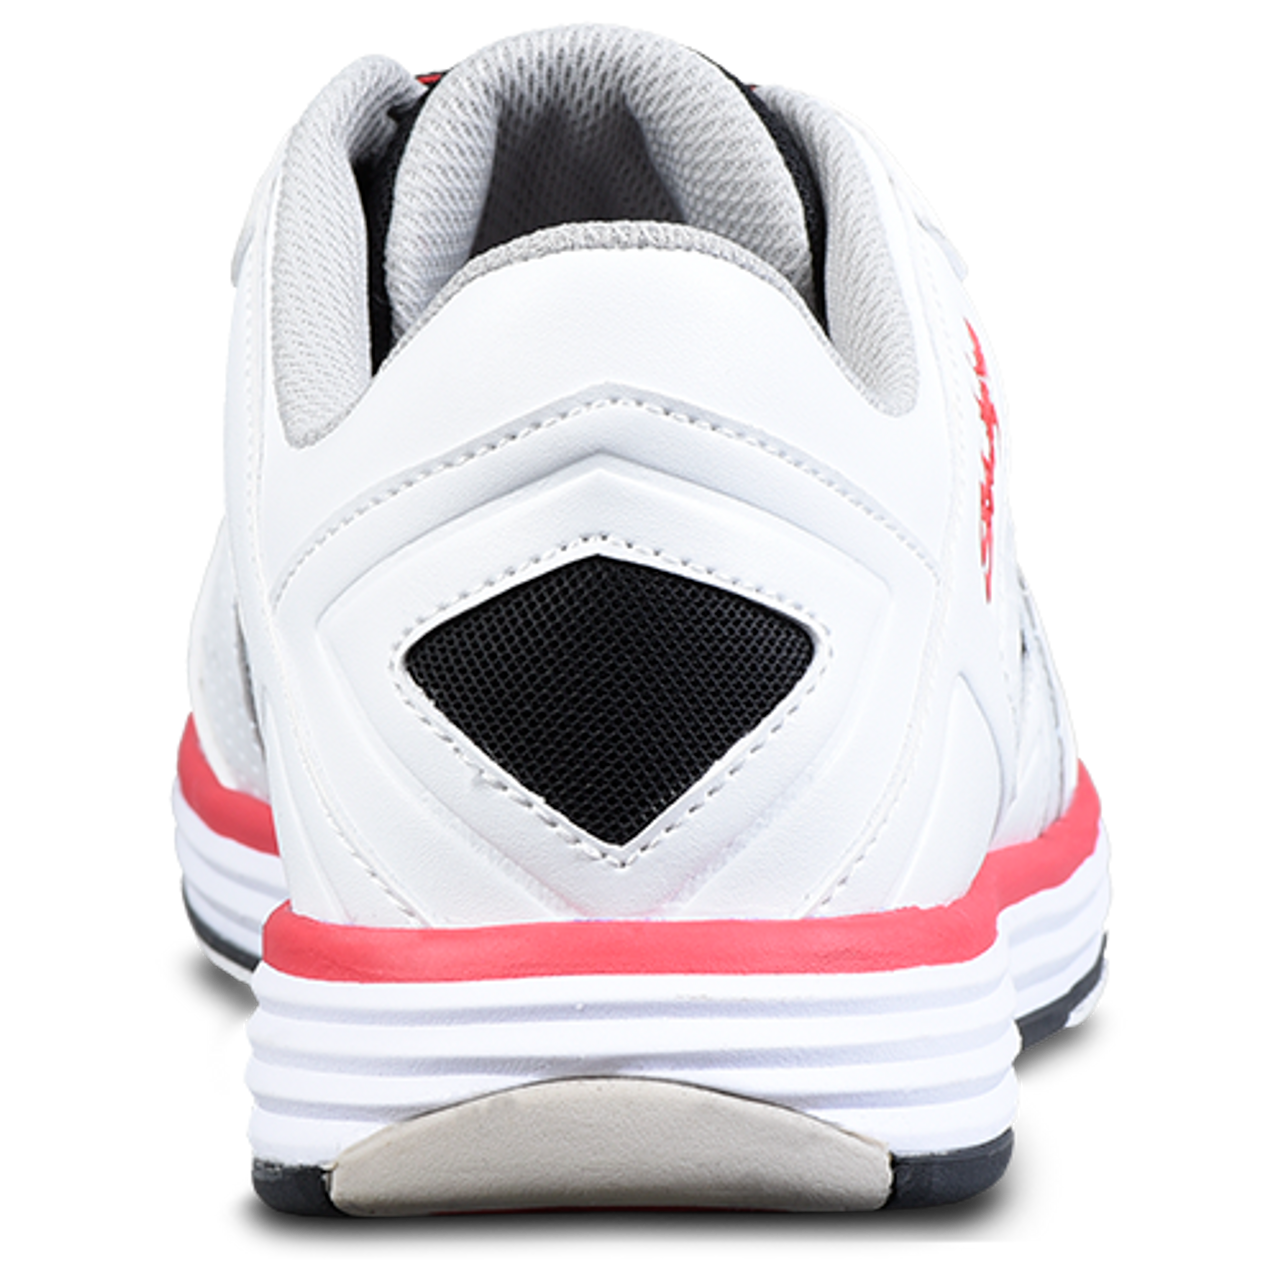 30575ce98a5e KR Strikeforce Mens Ranger Bowling Shoes White Black Red FREE ...